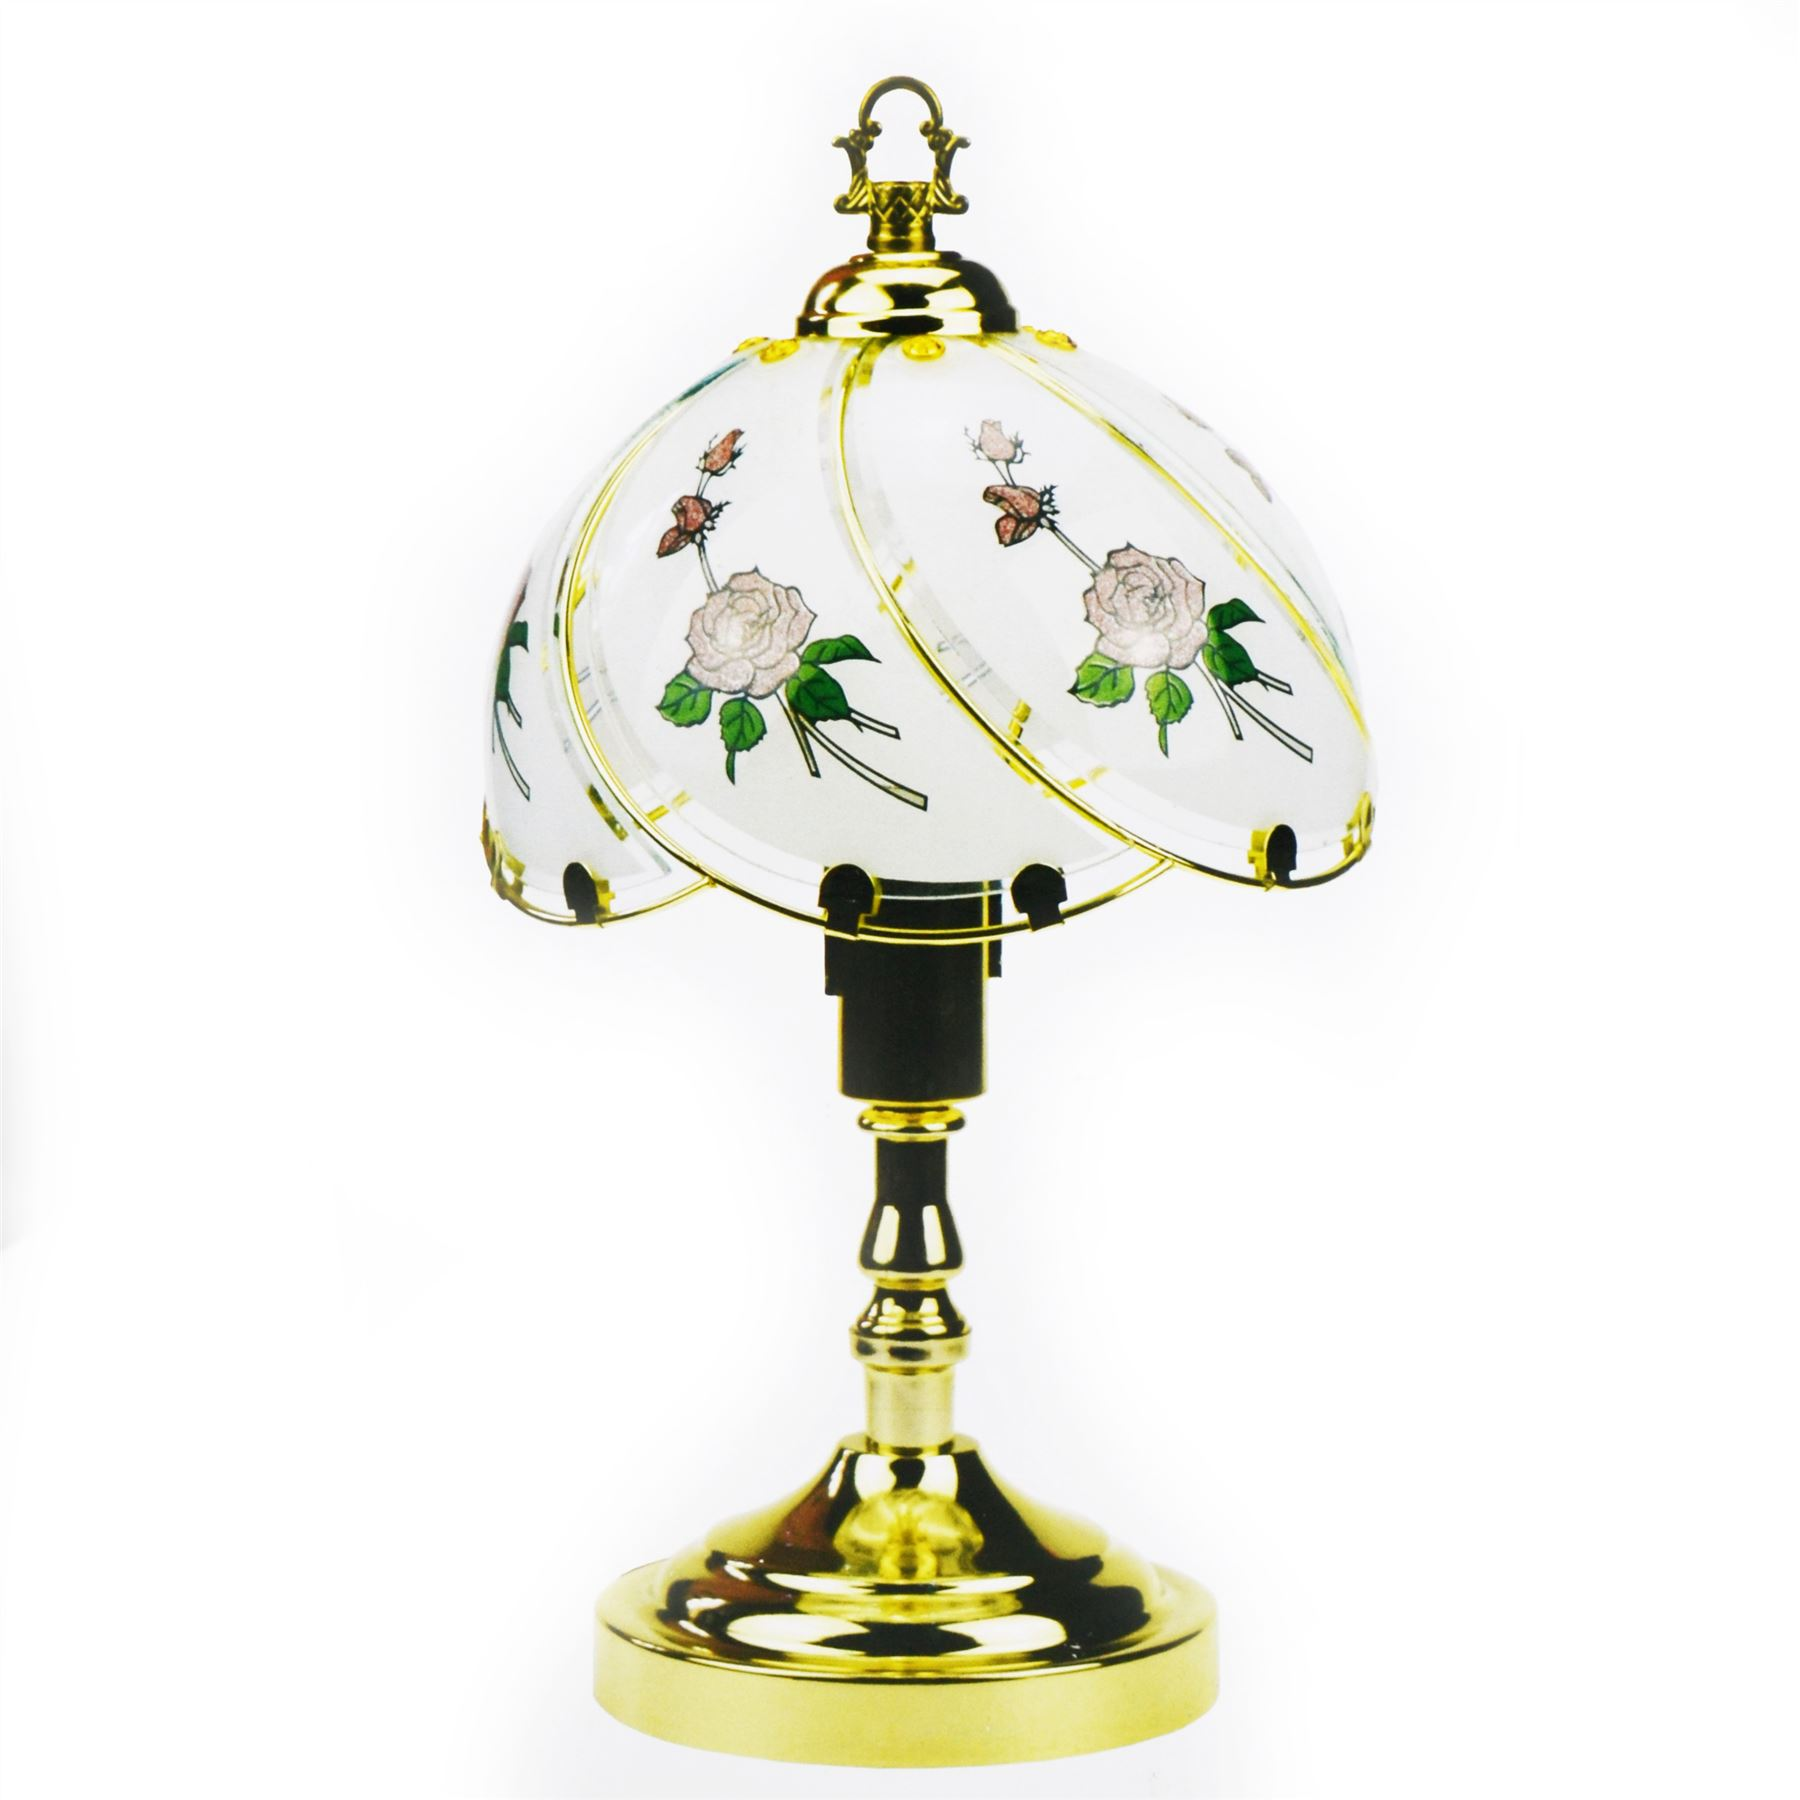 Vintage Style Table Touch Control Lamp Bedroom Desktop